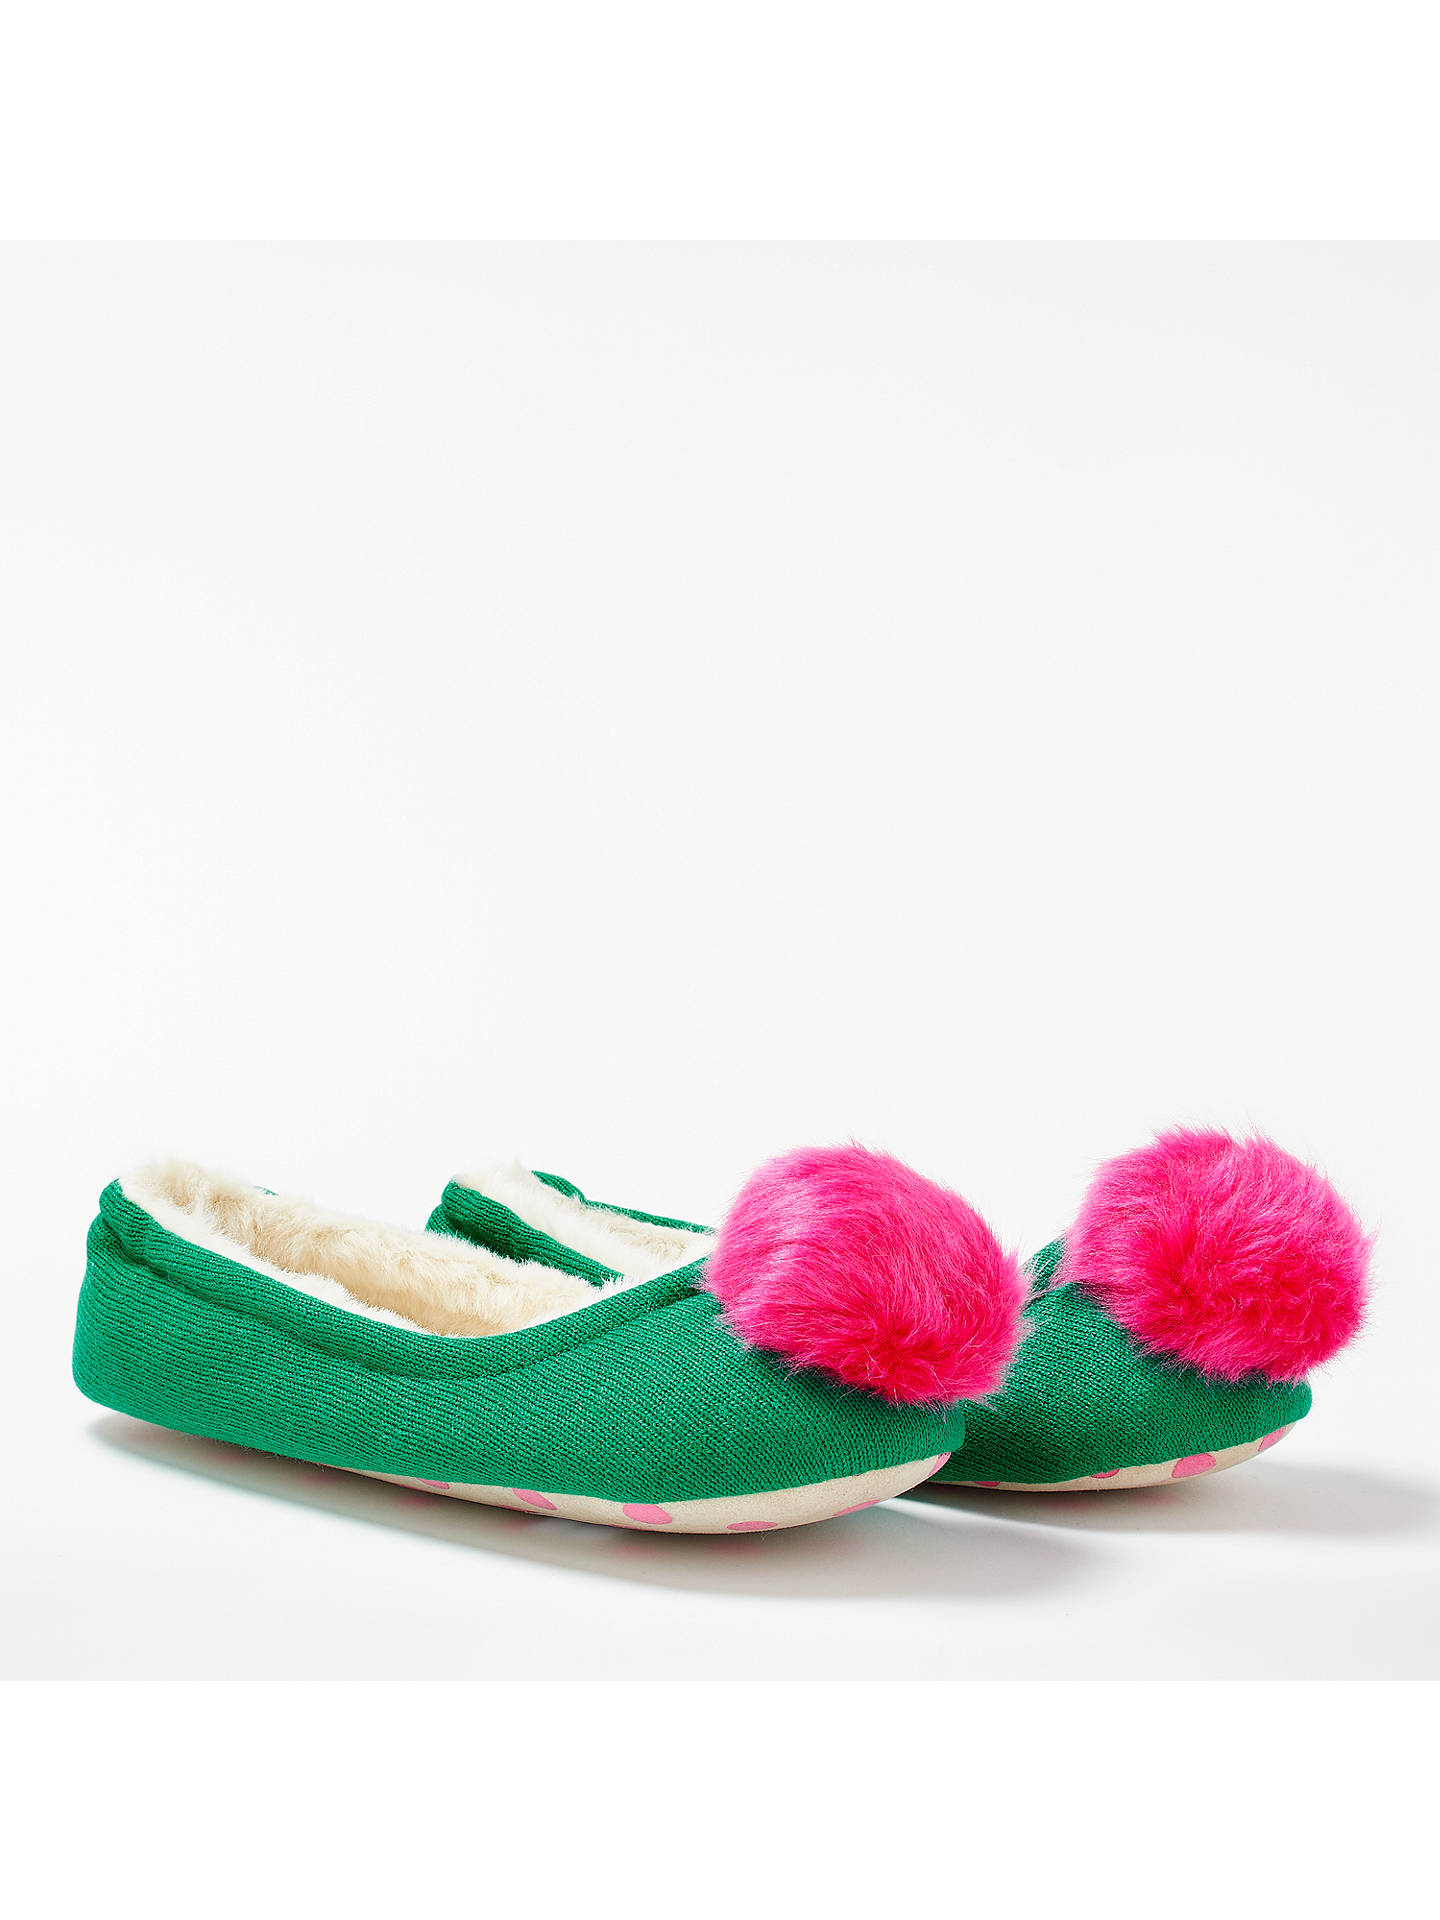 BuyBoden Knitted Pom Pom Slippers, Green, 4 Online at johnlewis.com